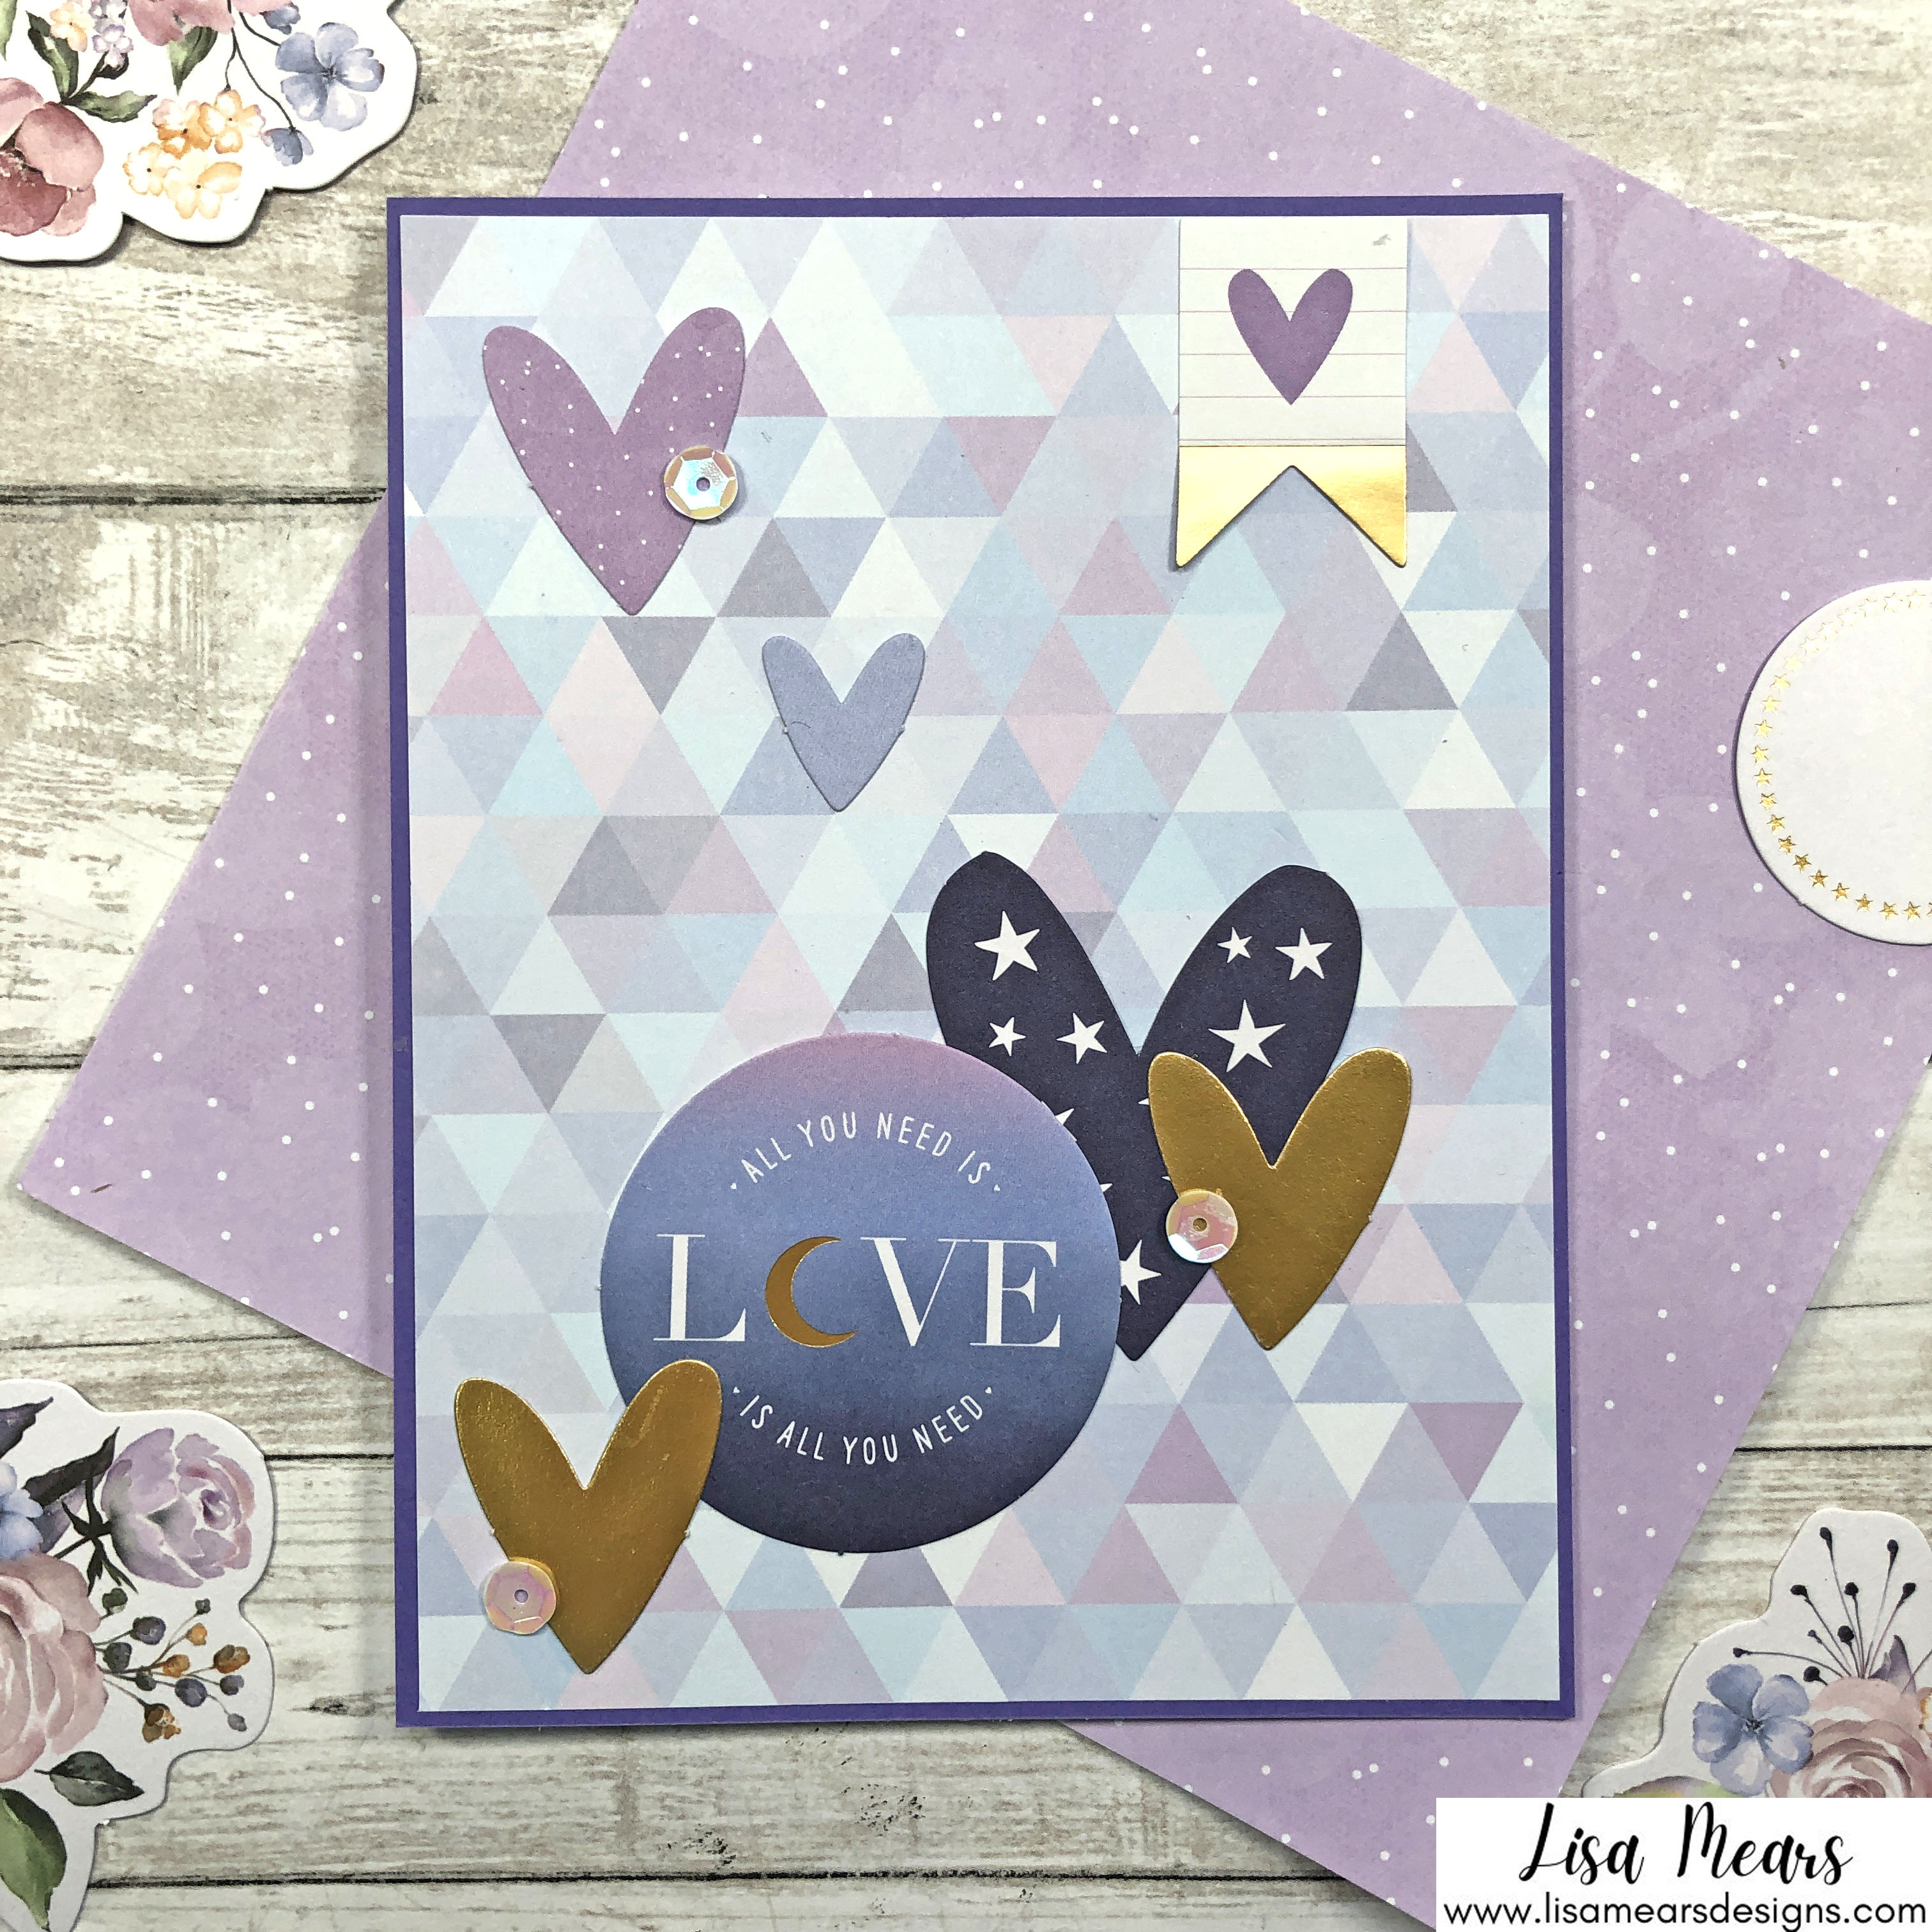 Spellbinders October 2021 Card Kit - You are Stellar! Card with Hearts